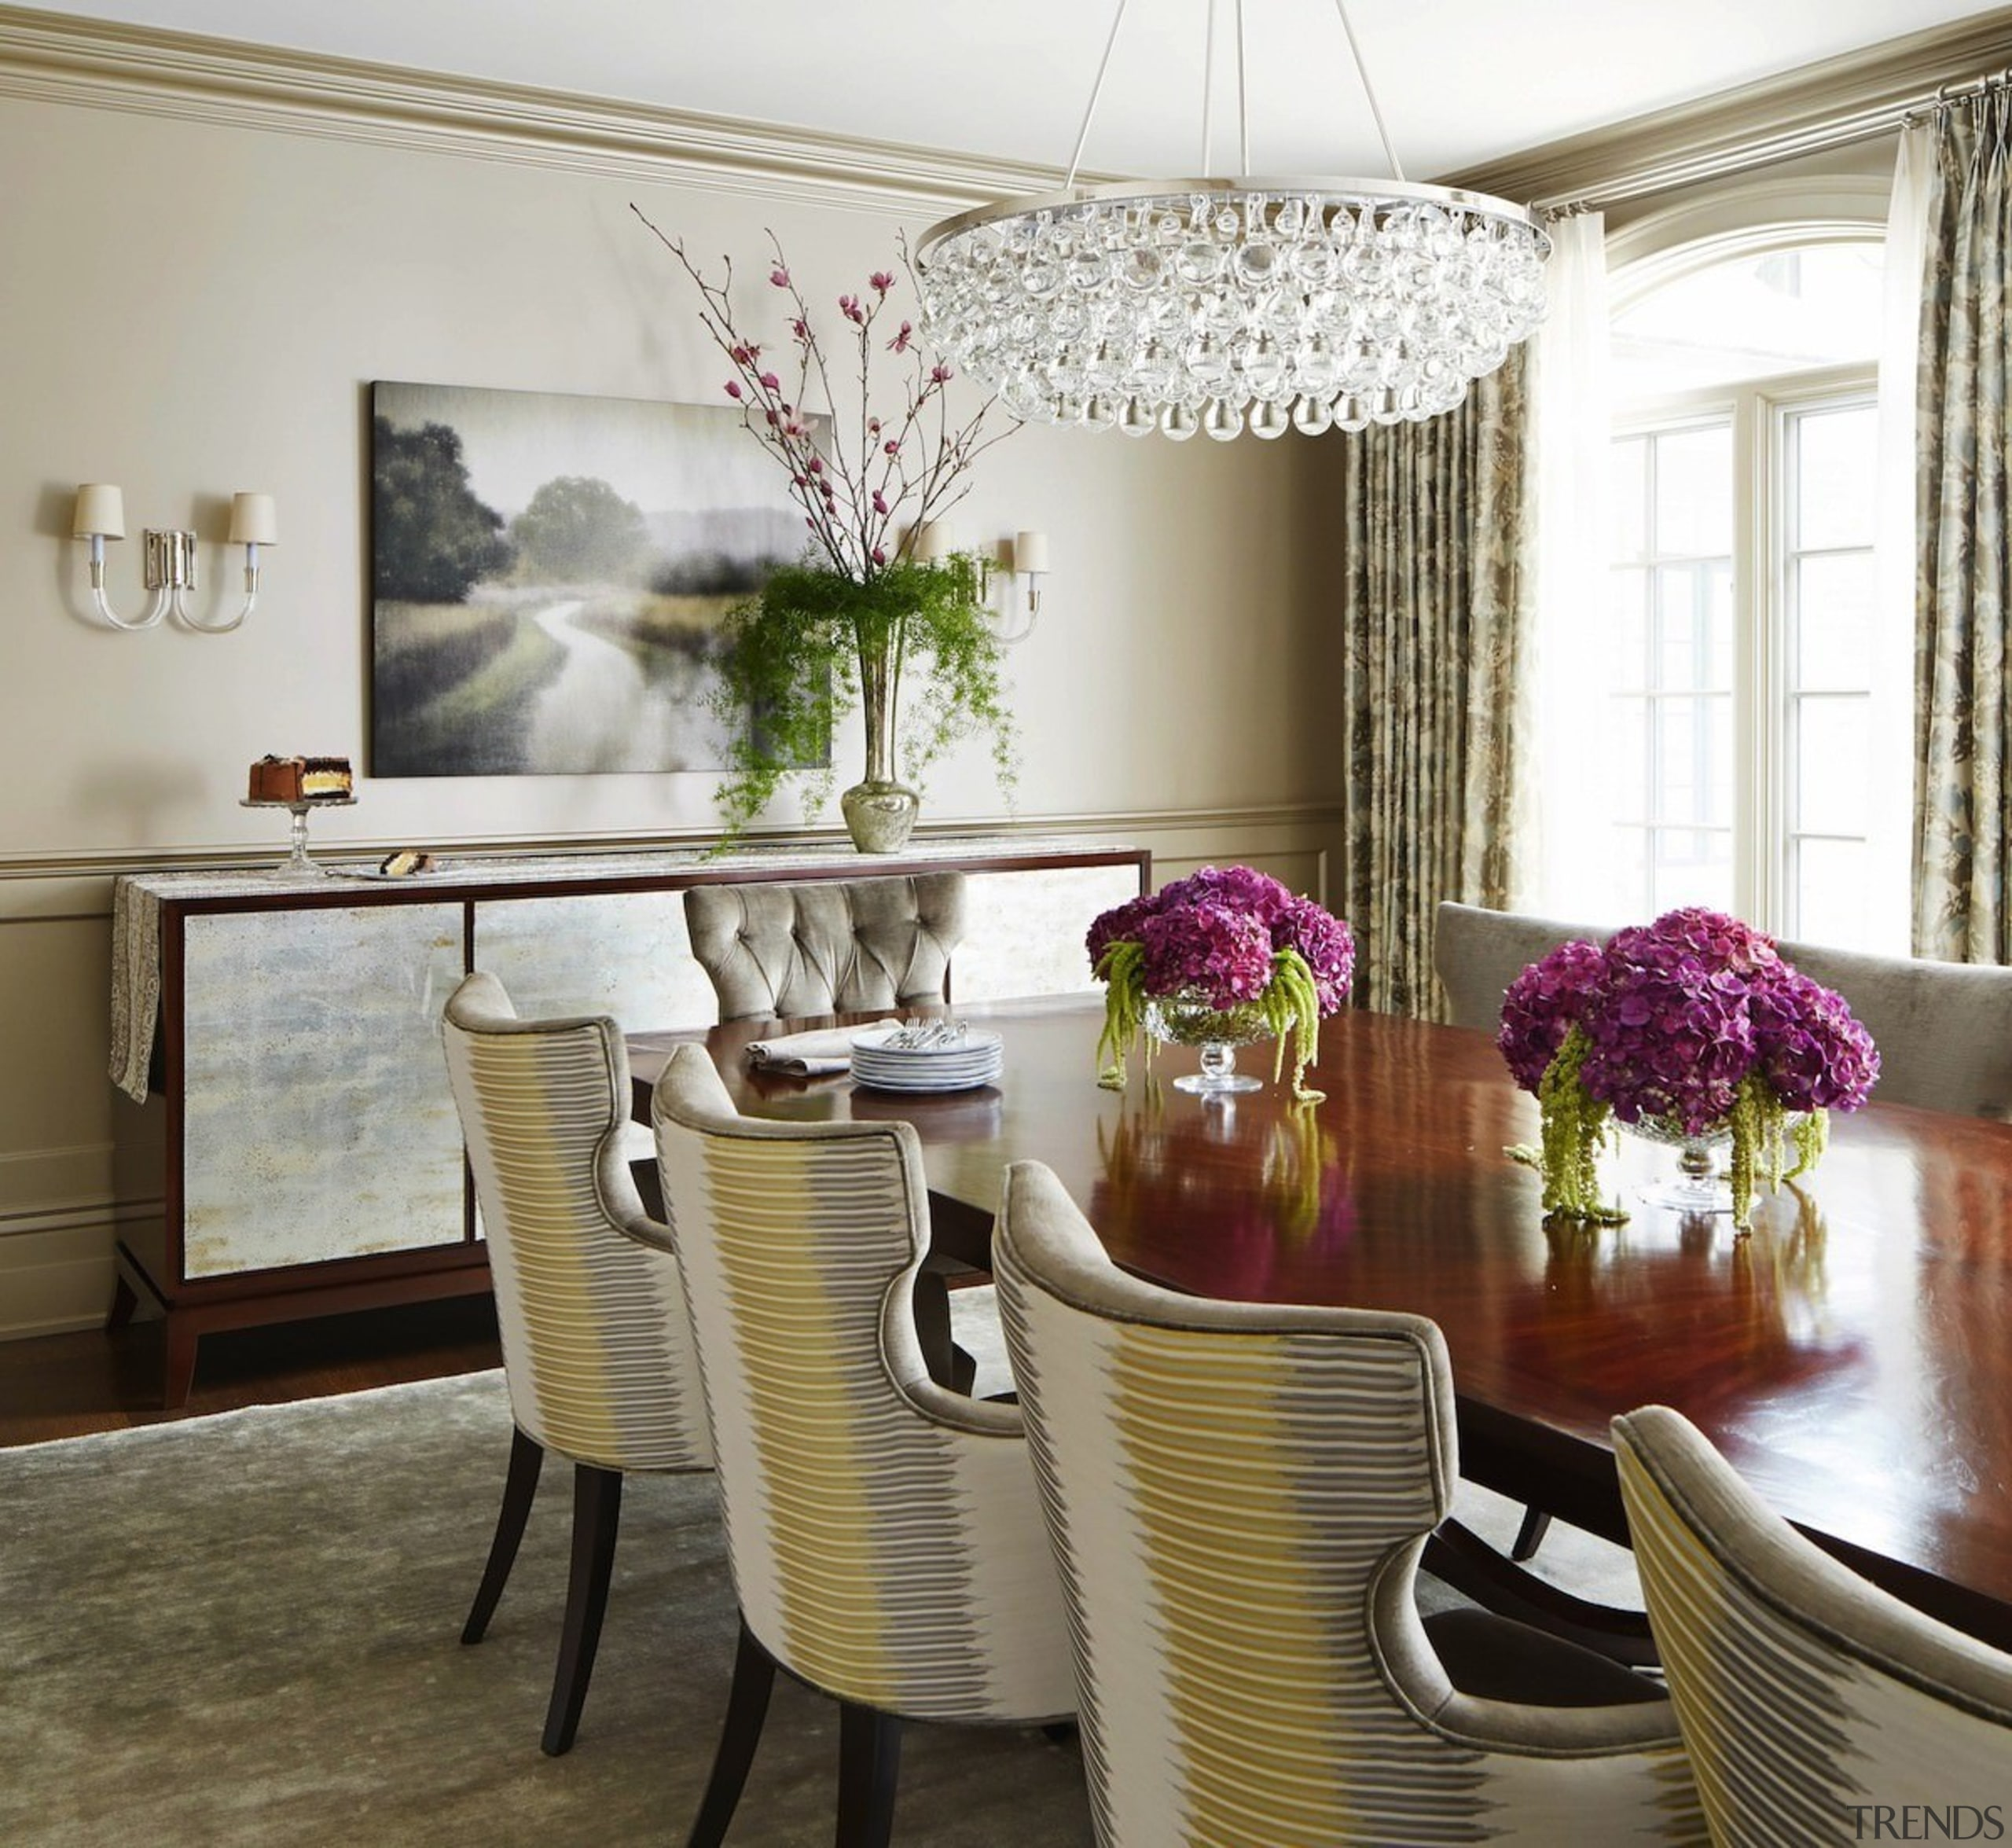 The formal dining room has a large chandelier chair, dining room, furniture, home, interior design, living room, purple, room, table, white, brown